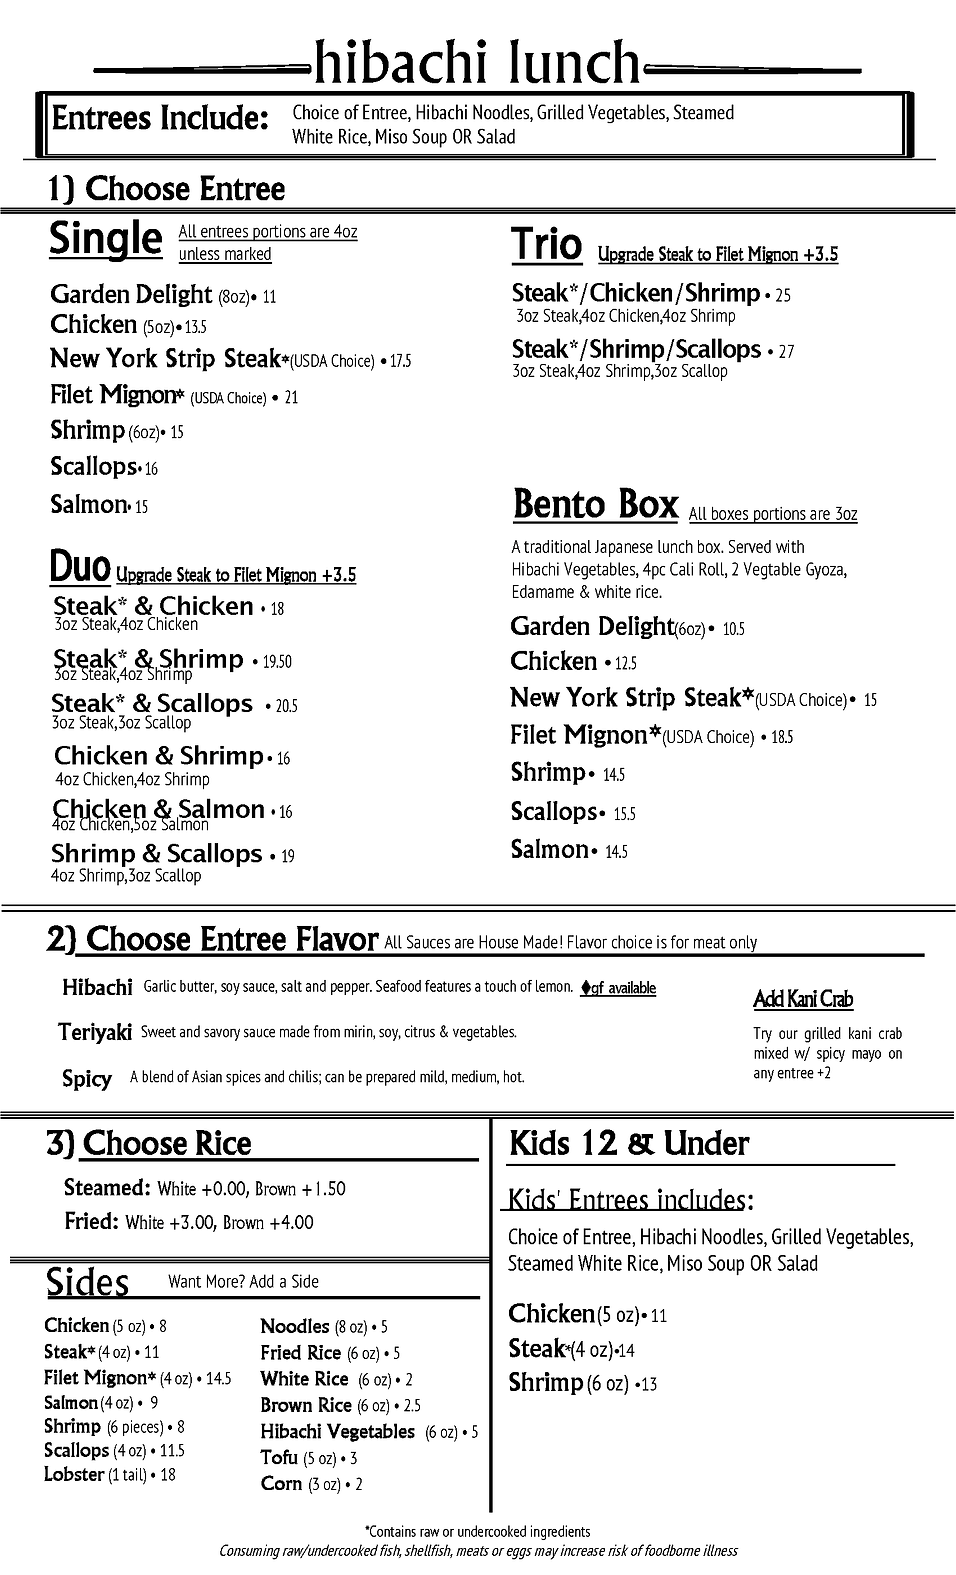 REAL ONE Hibachi Lunch Menu Page-7.1.21.png